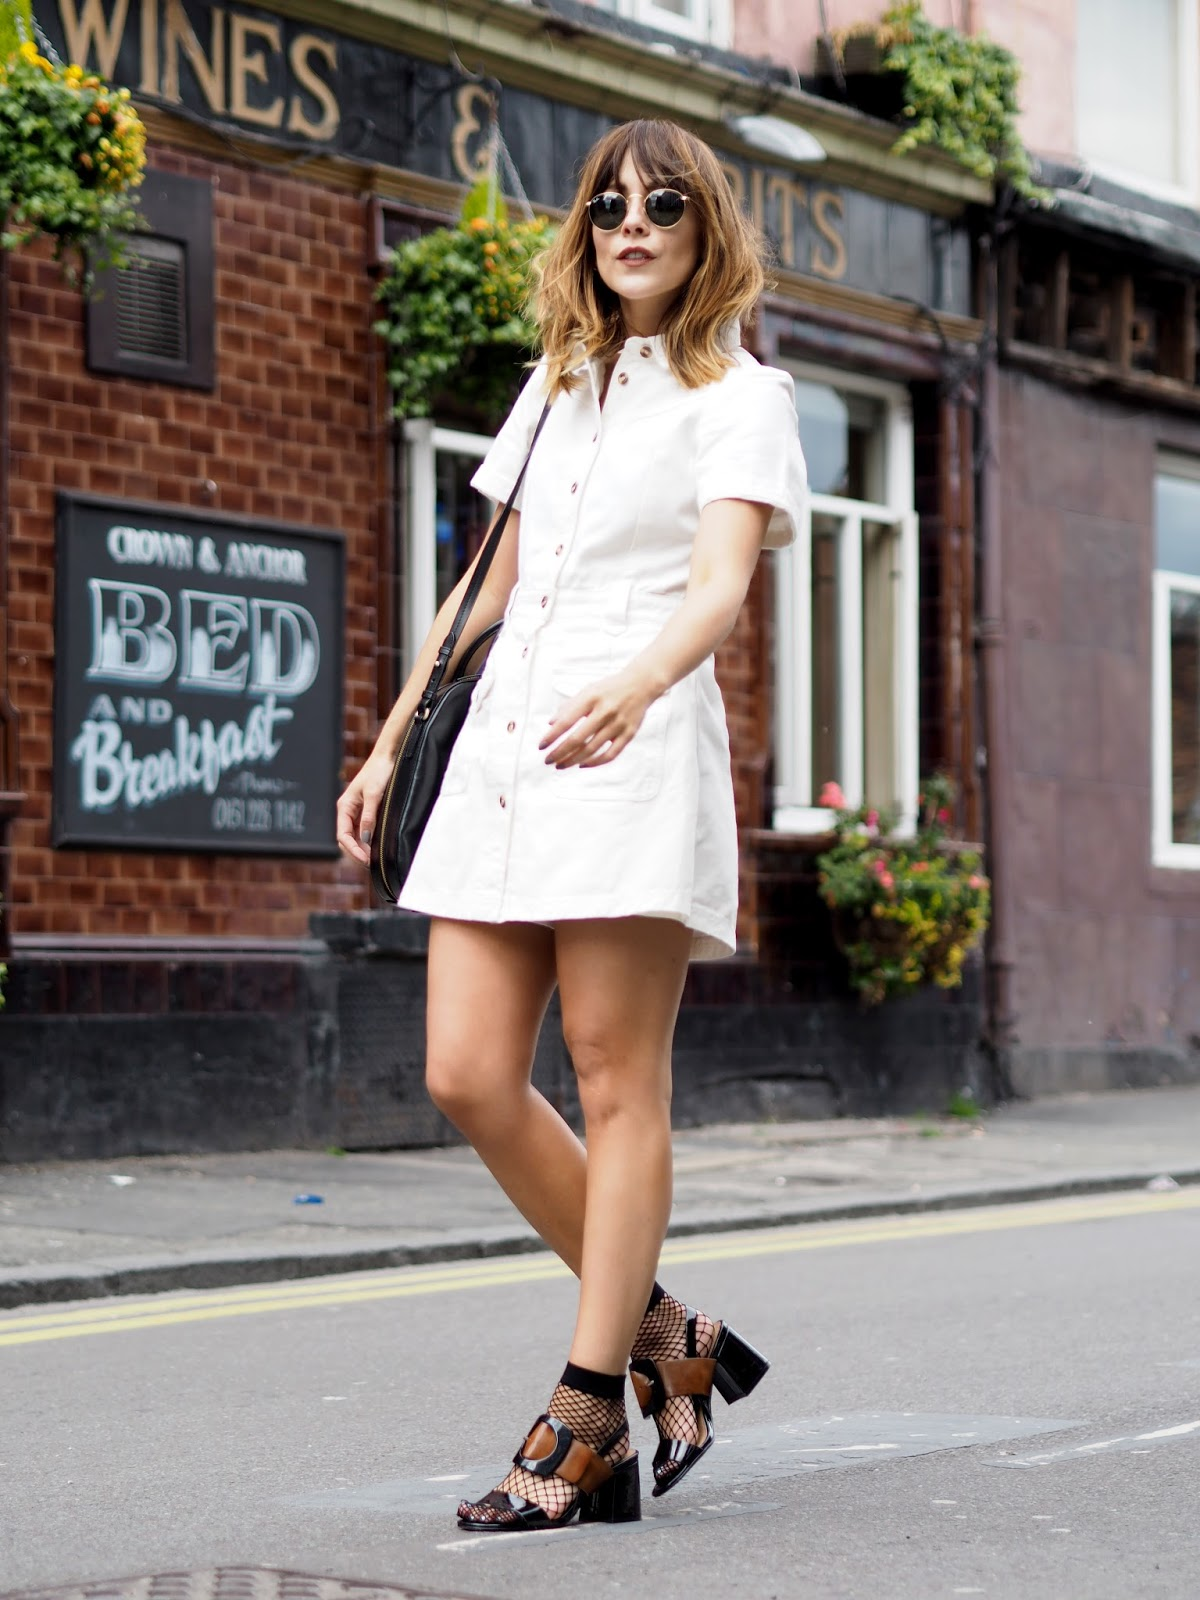 Socks and Sandals styling for summer